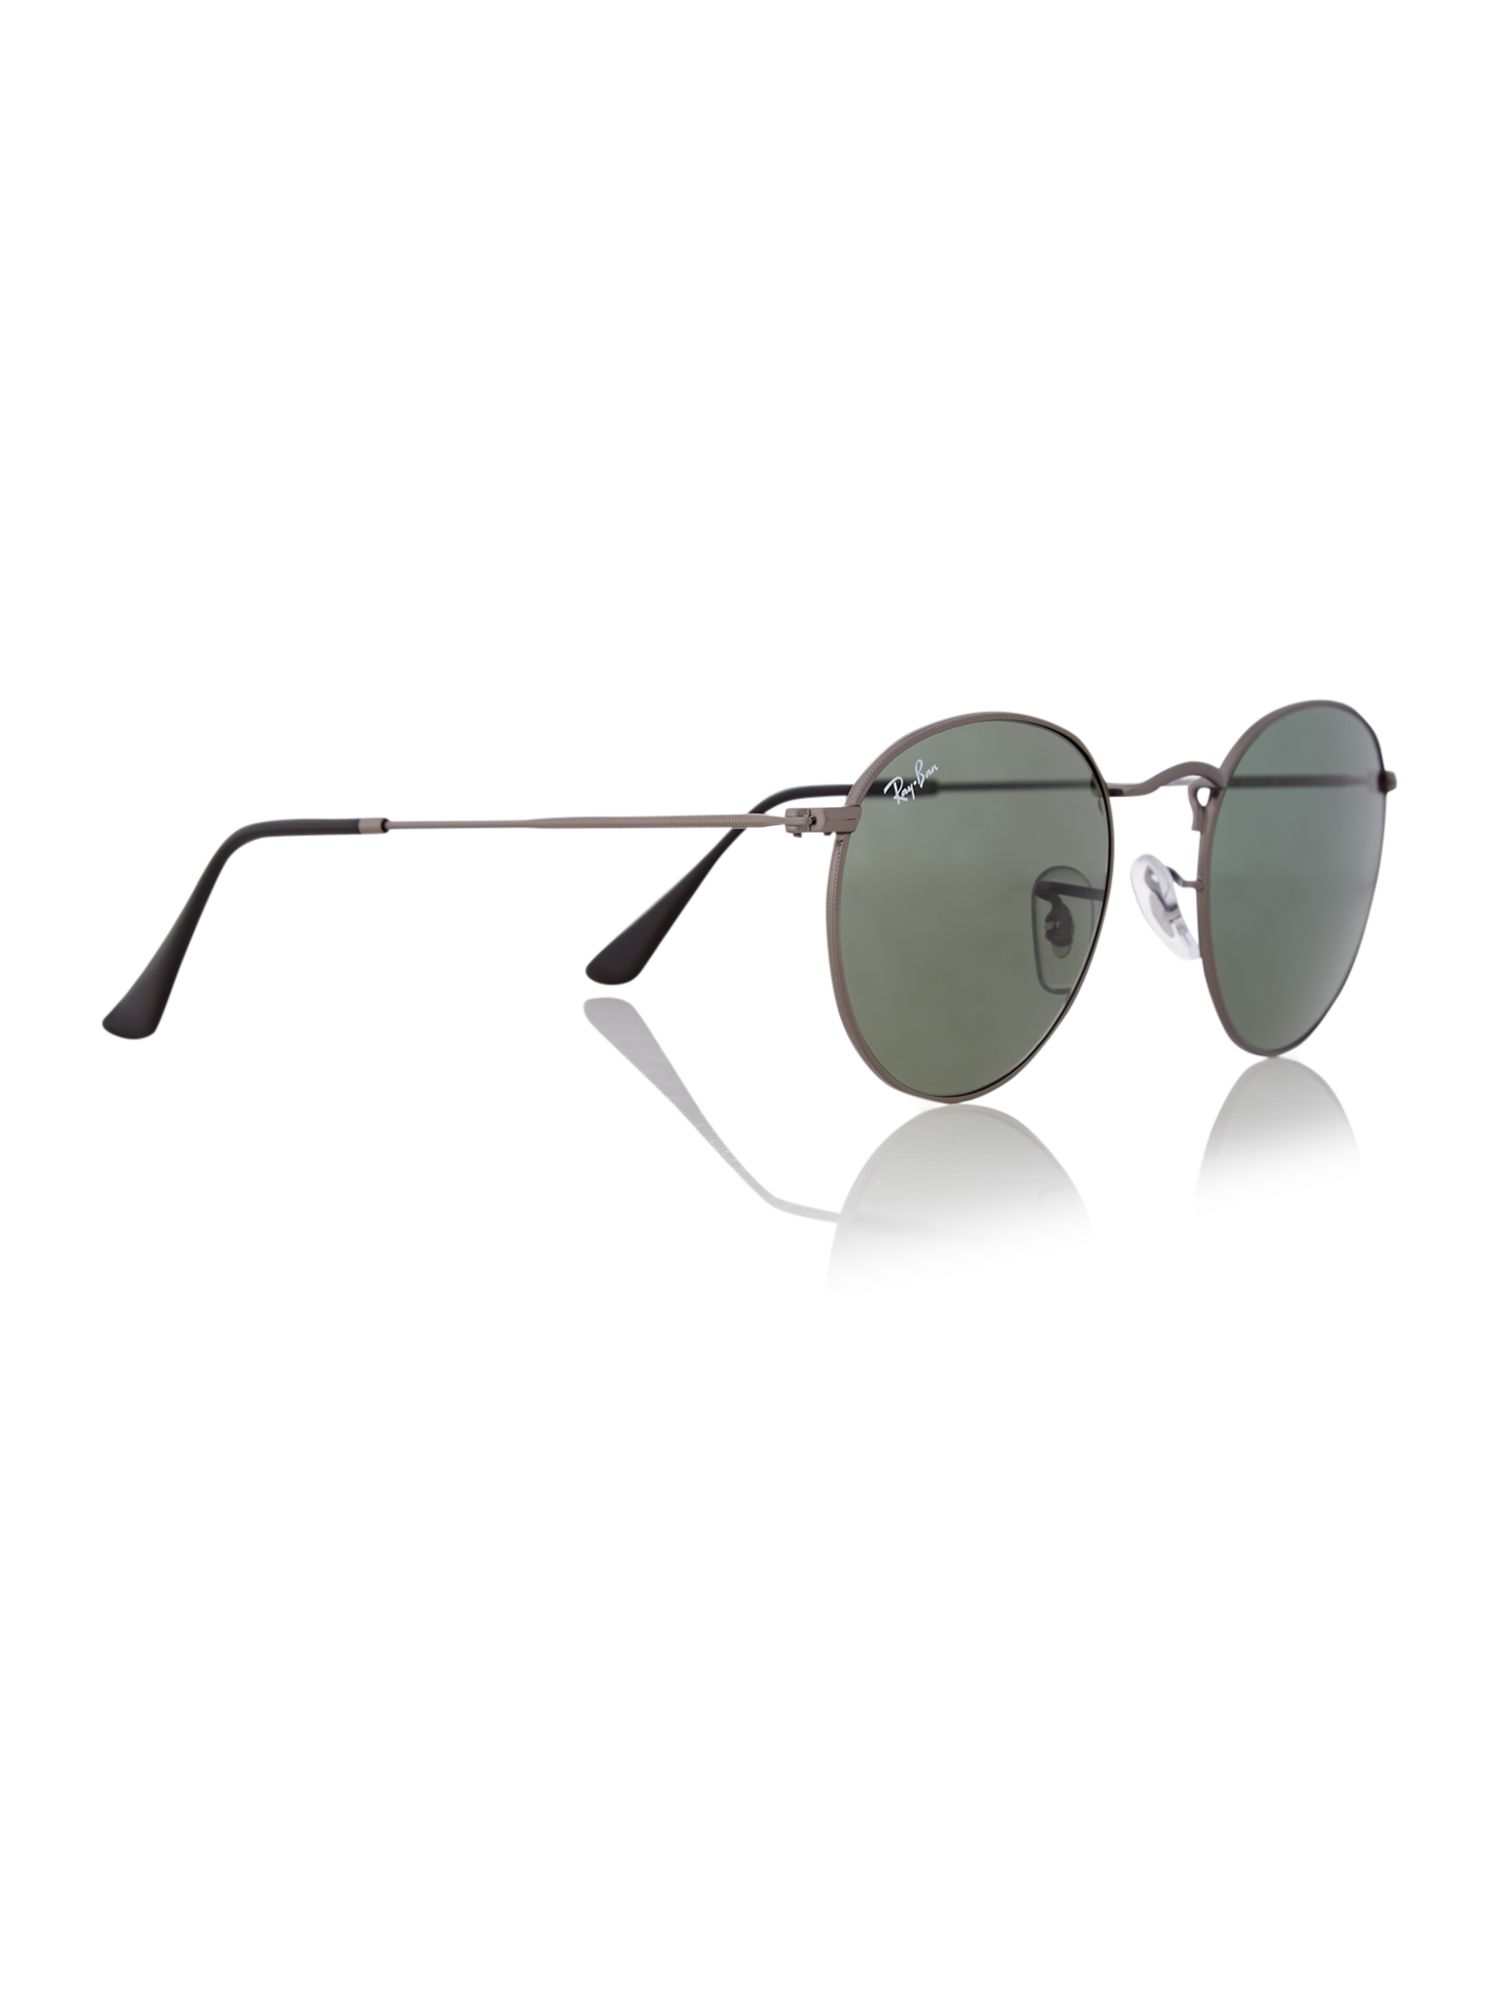 1792d81739 ray ban outlet atlantic city